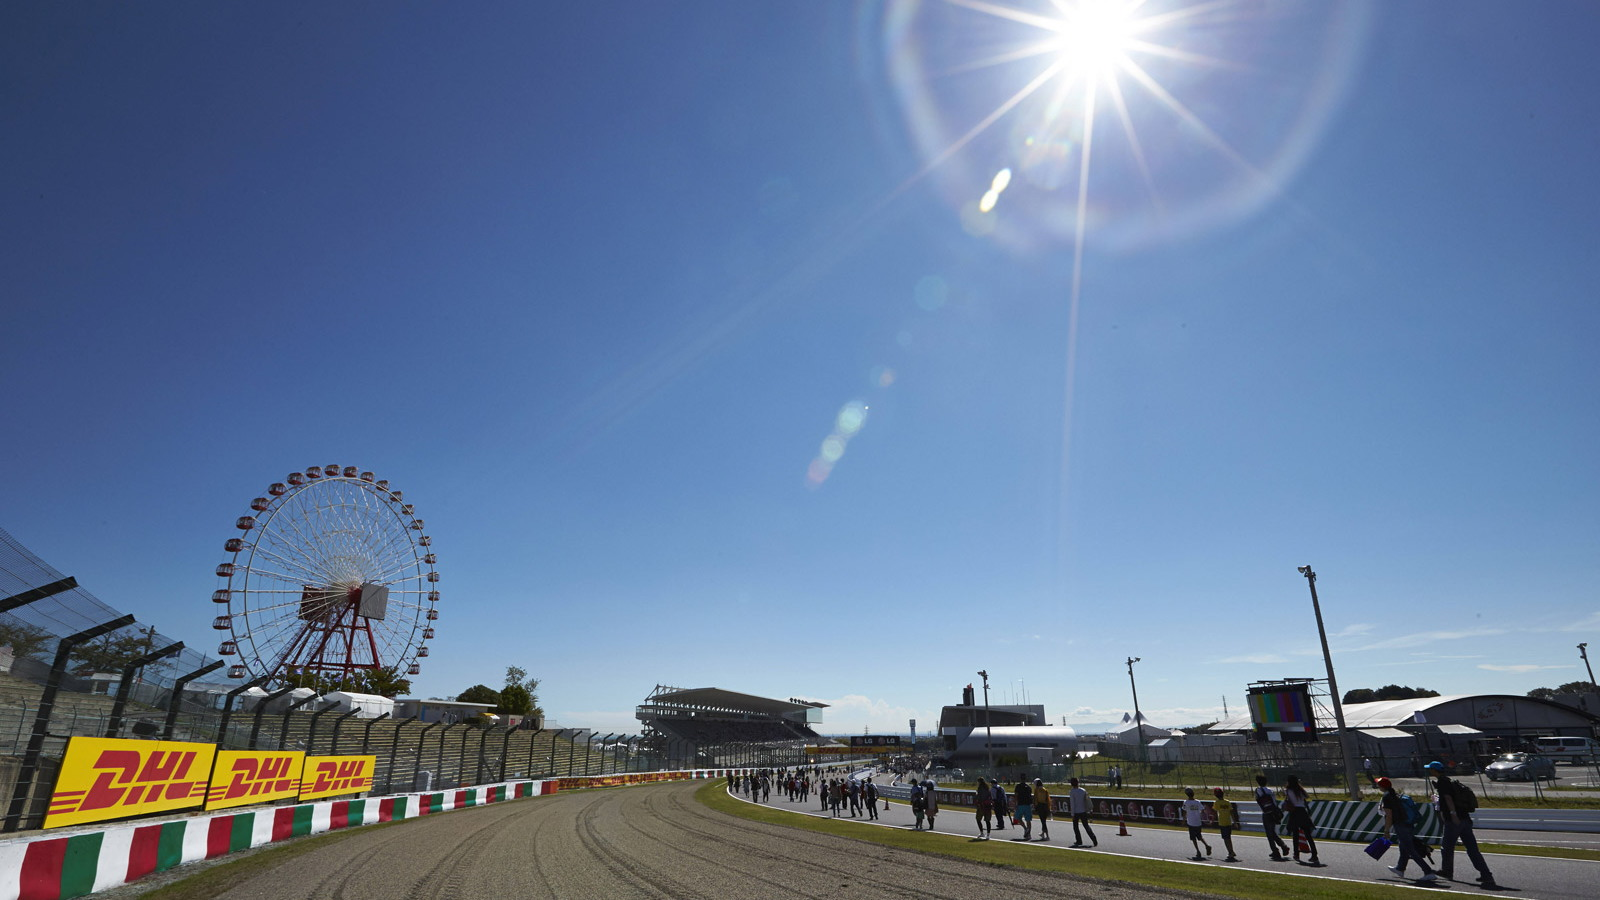 Suzuka Circuit, home of the Formula 1 Japanese Grand Prix